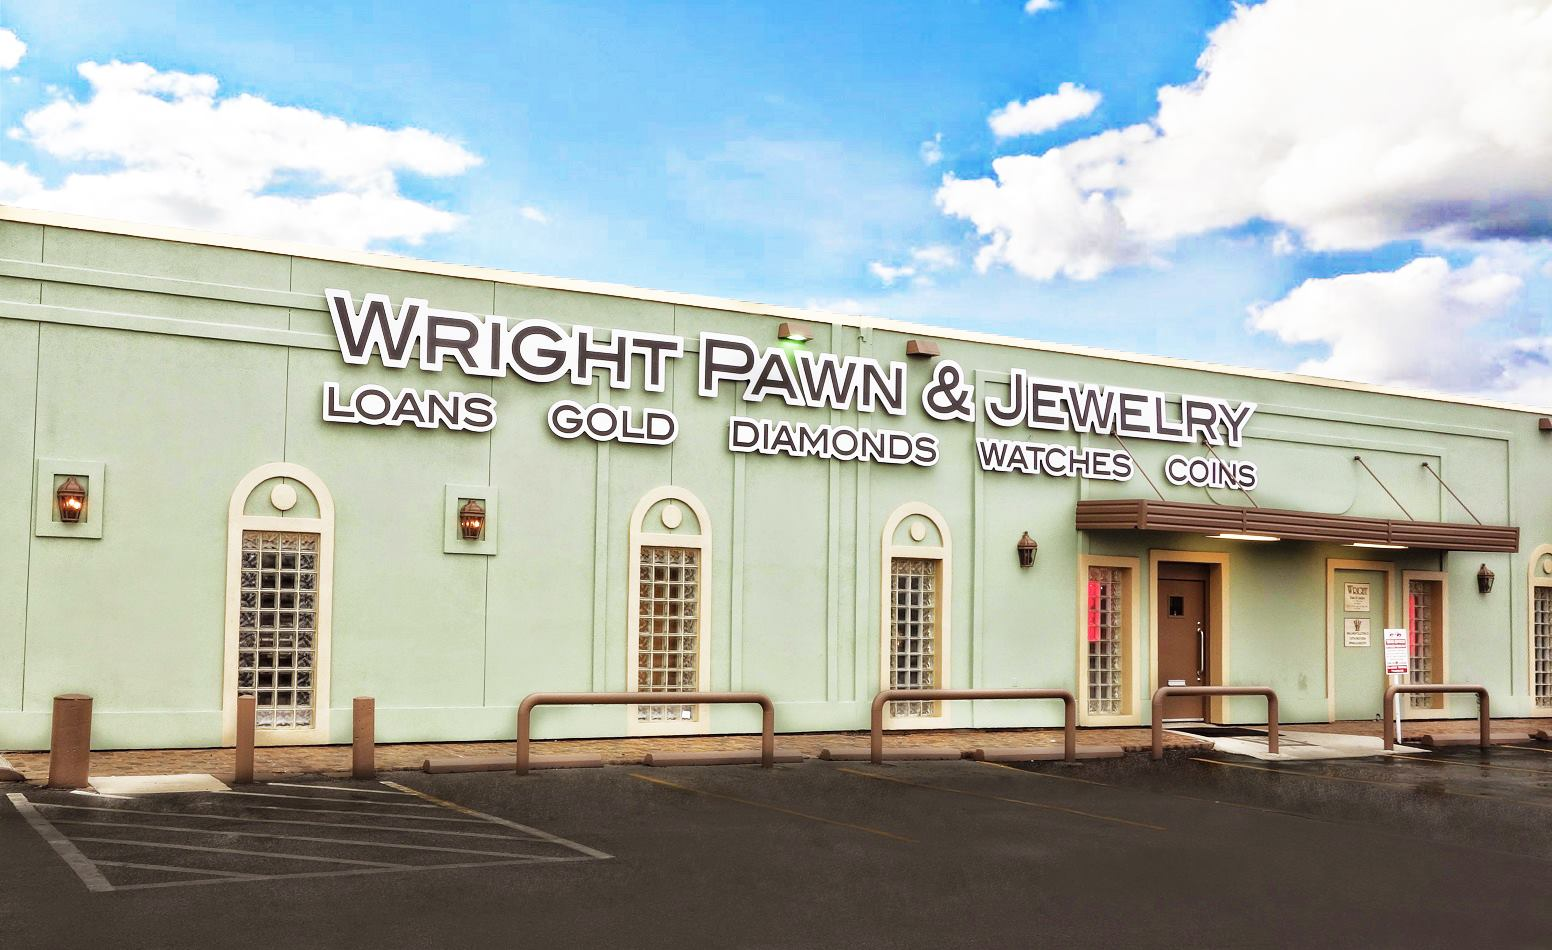 Wright Pawn and Jewelry Storefront